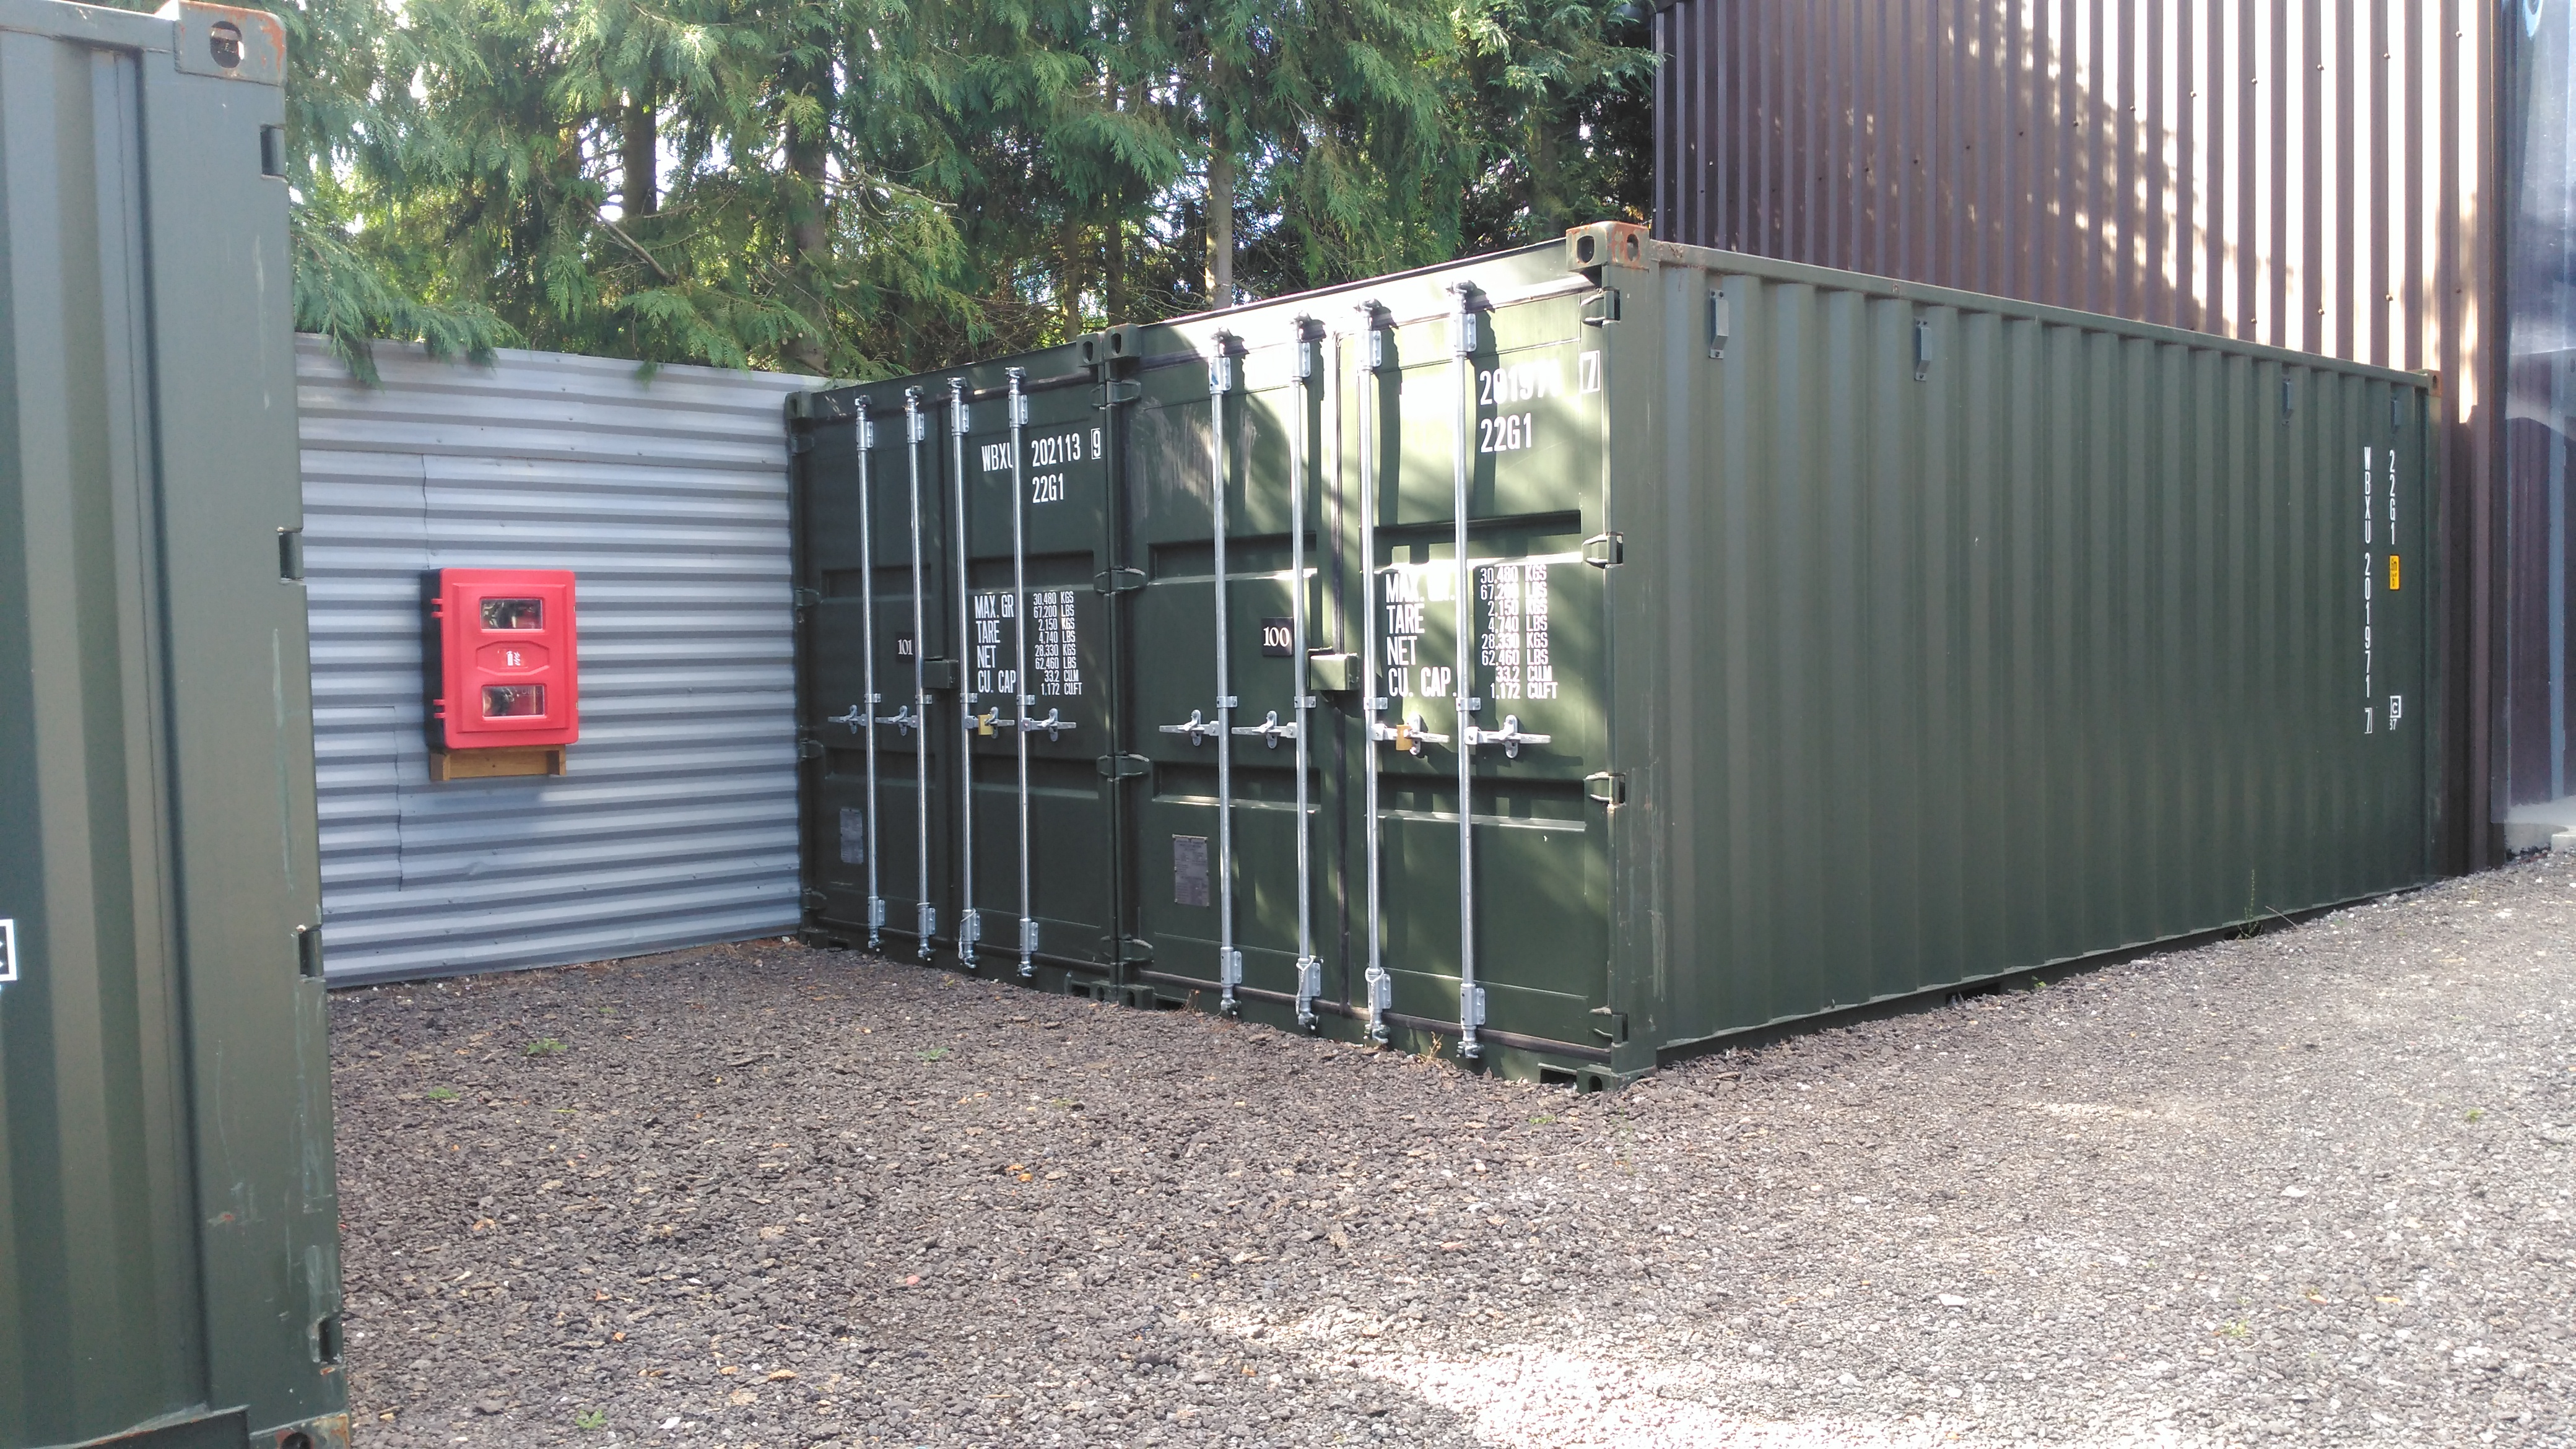 8 x 20 Shipment container